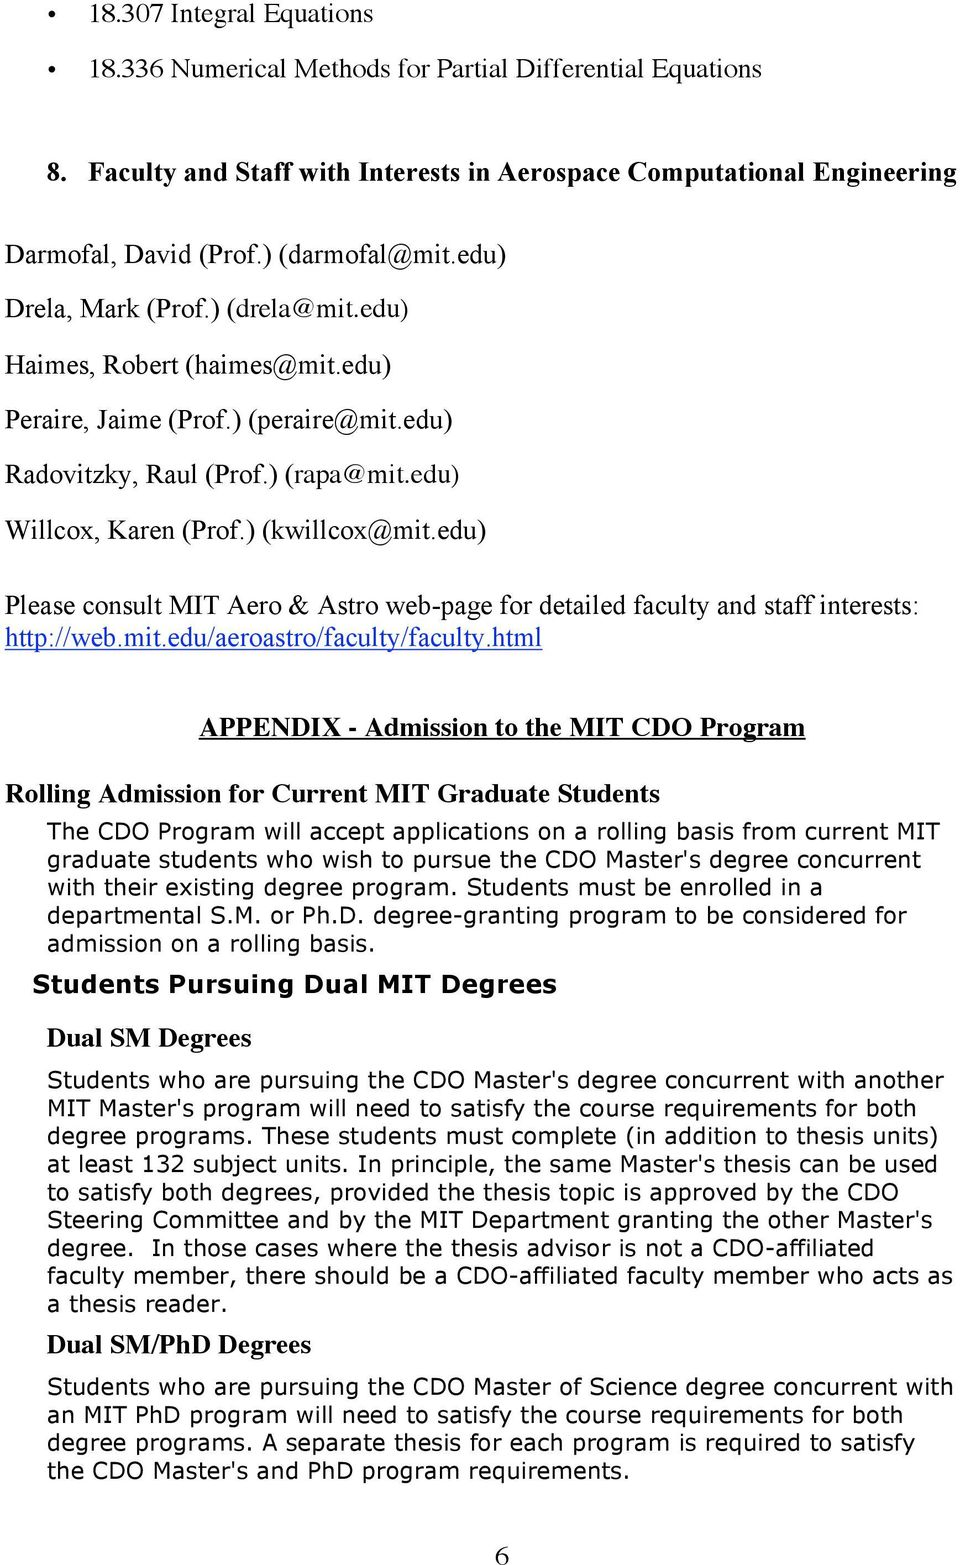 edu) Please consult MIT Aero & Astro web-page for detailed faculty and staff interests: http://web.mit.edu/aeroastro/faculty/faculty.